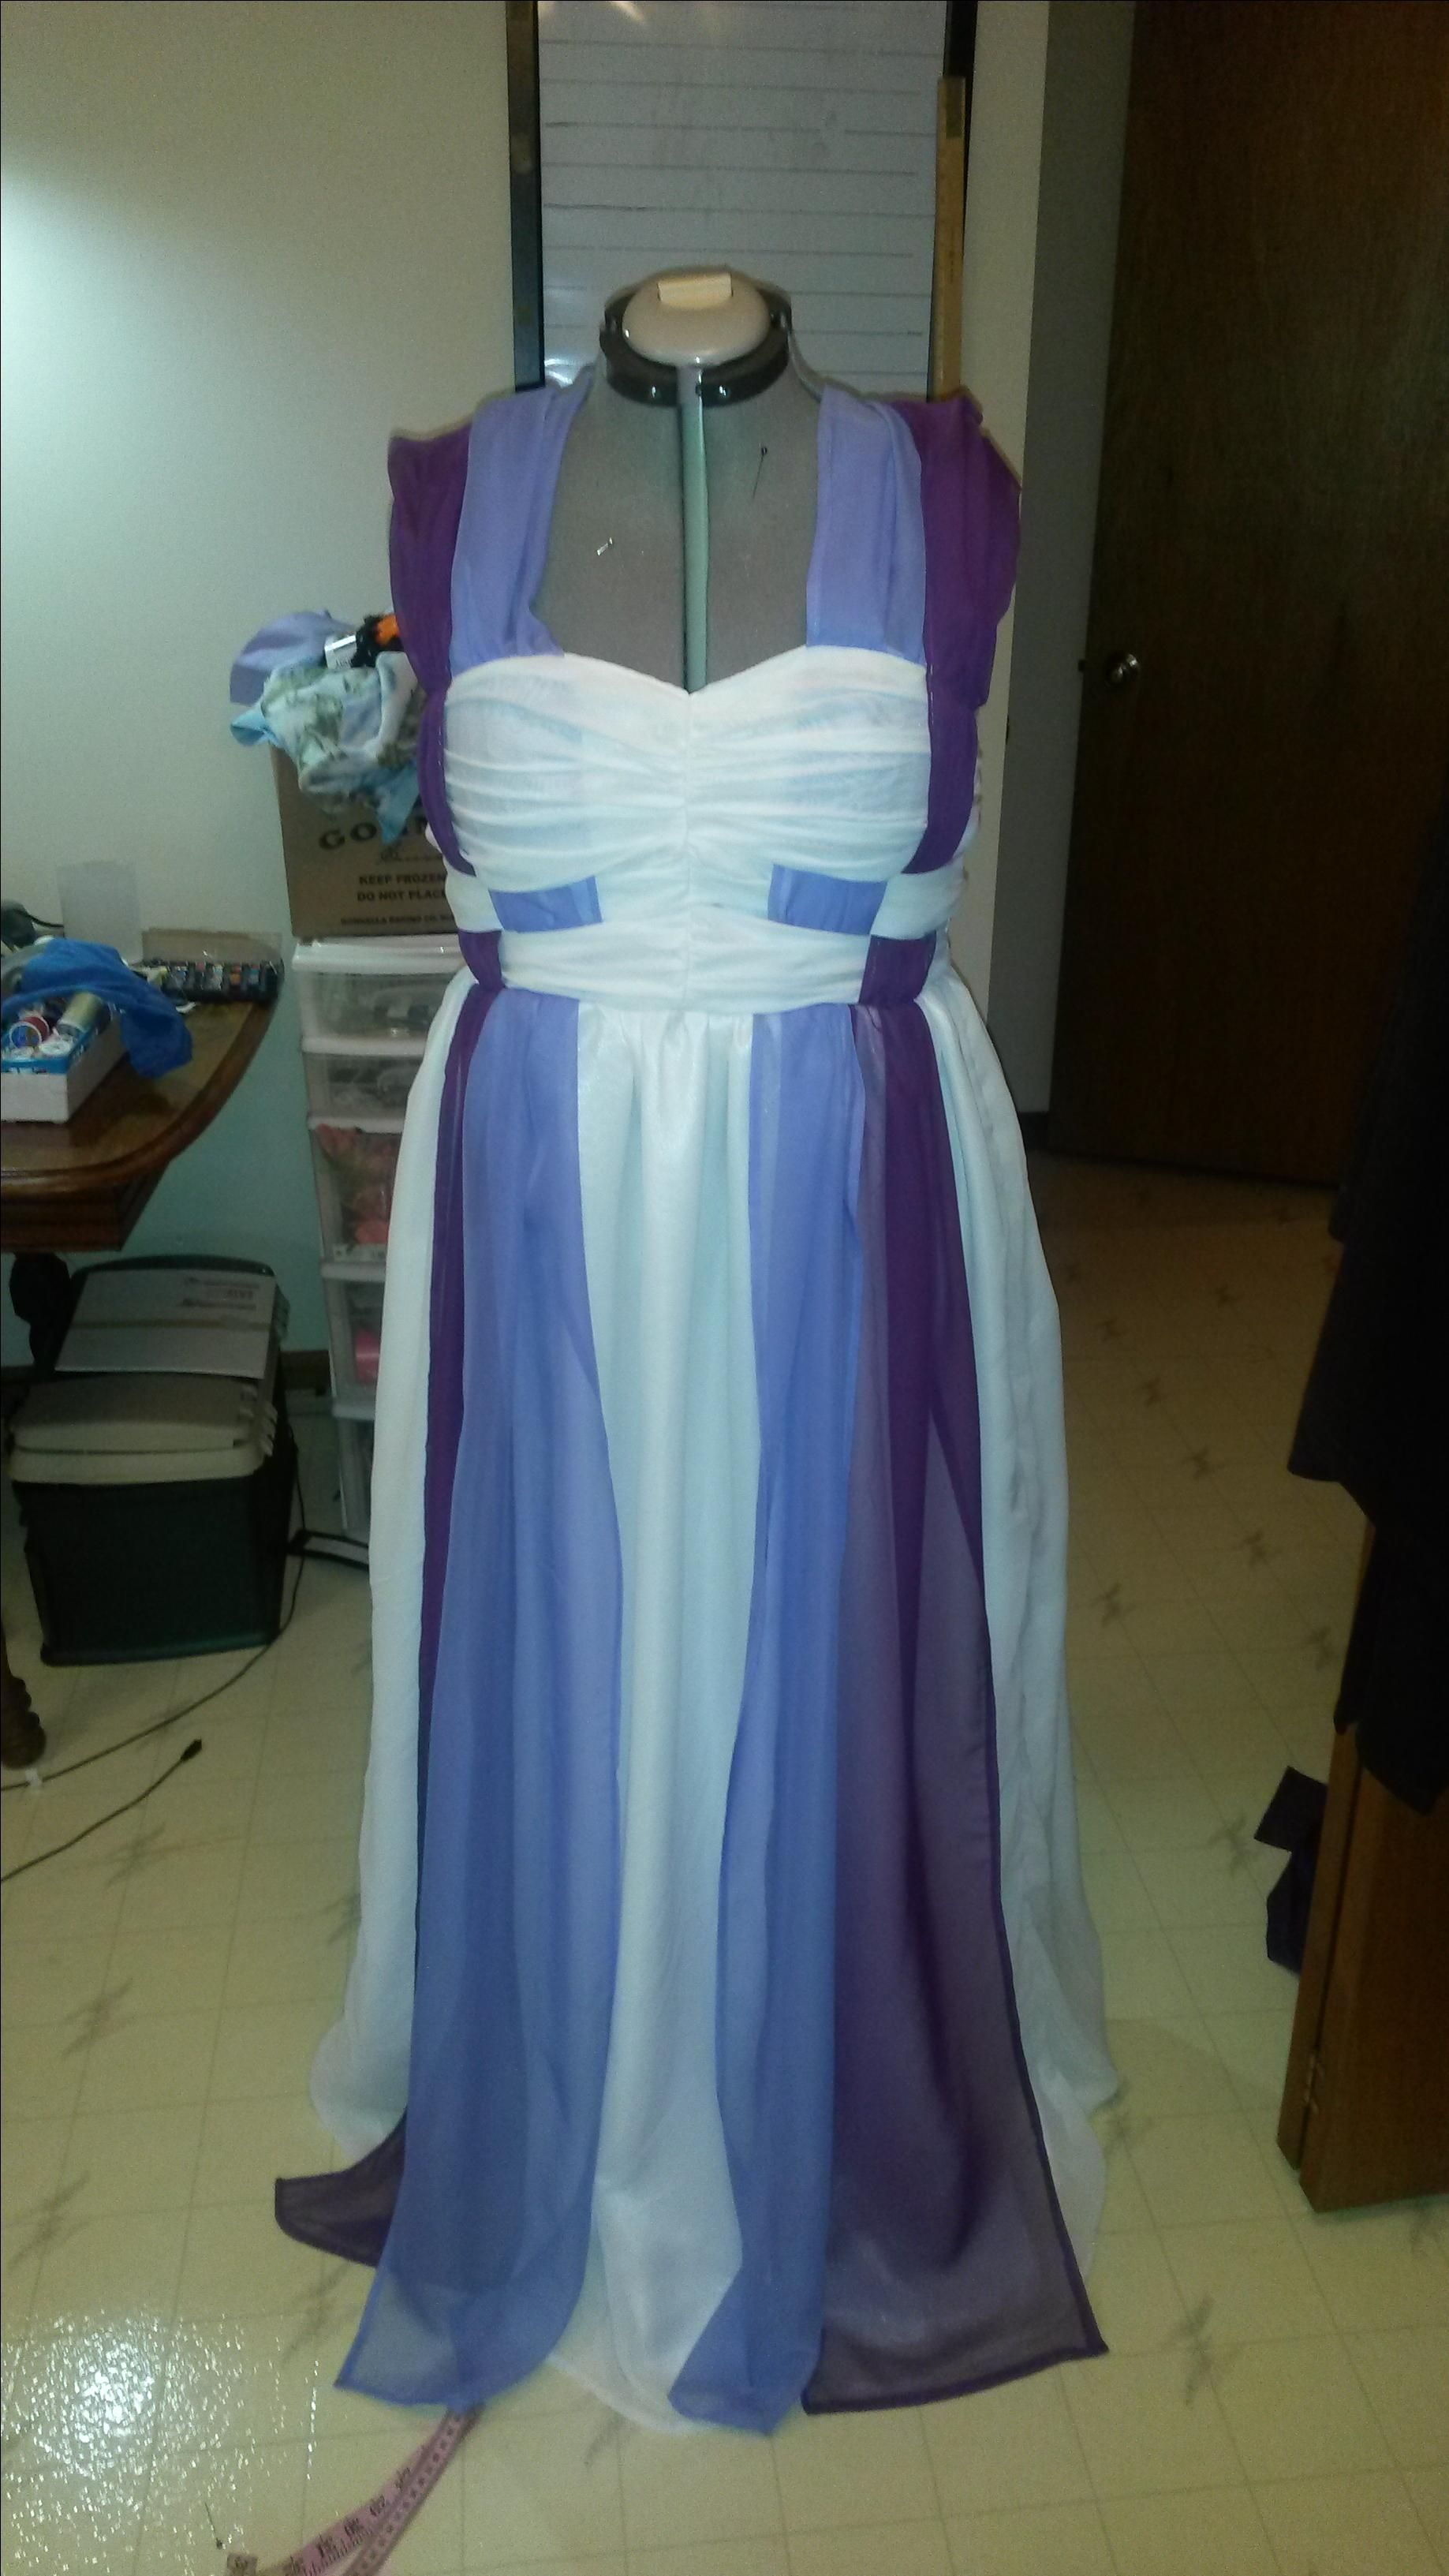 Buy Hand Made An Affair To Remember Inspired Wedding Dress, made to ...